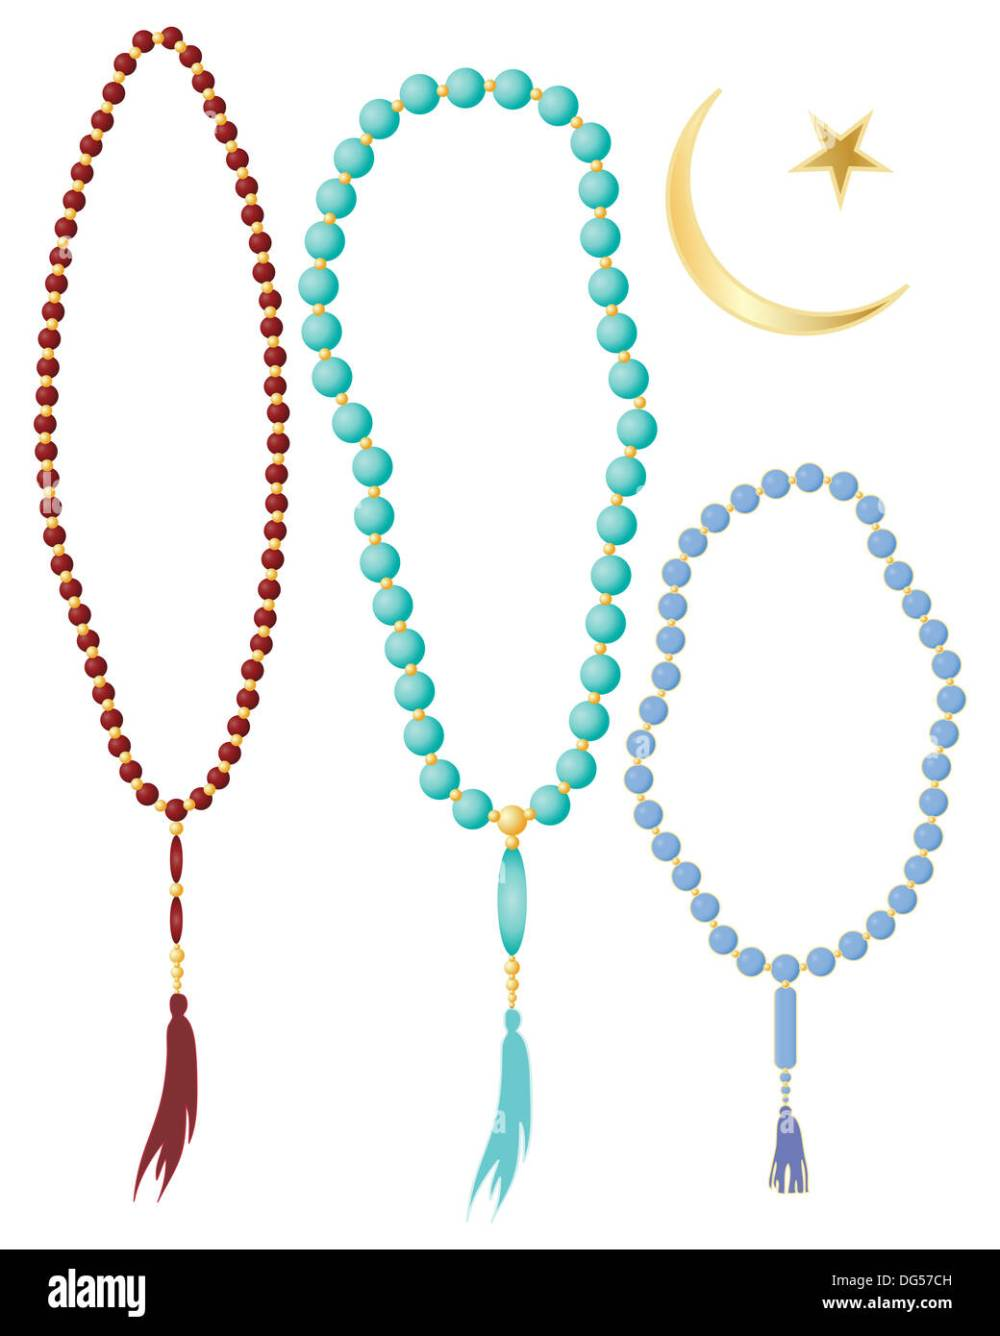 medium resolution of an illustration of islamic prayer beads in different colors with crescent moon symbol isolated on a